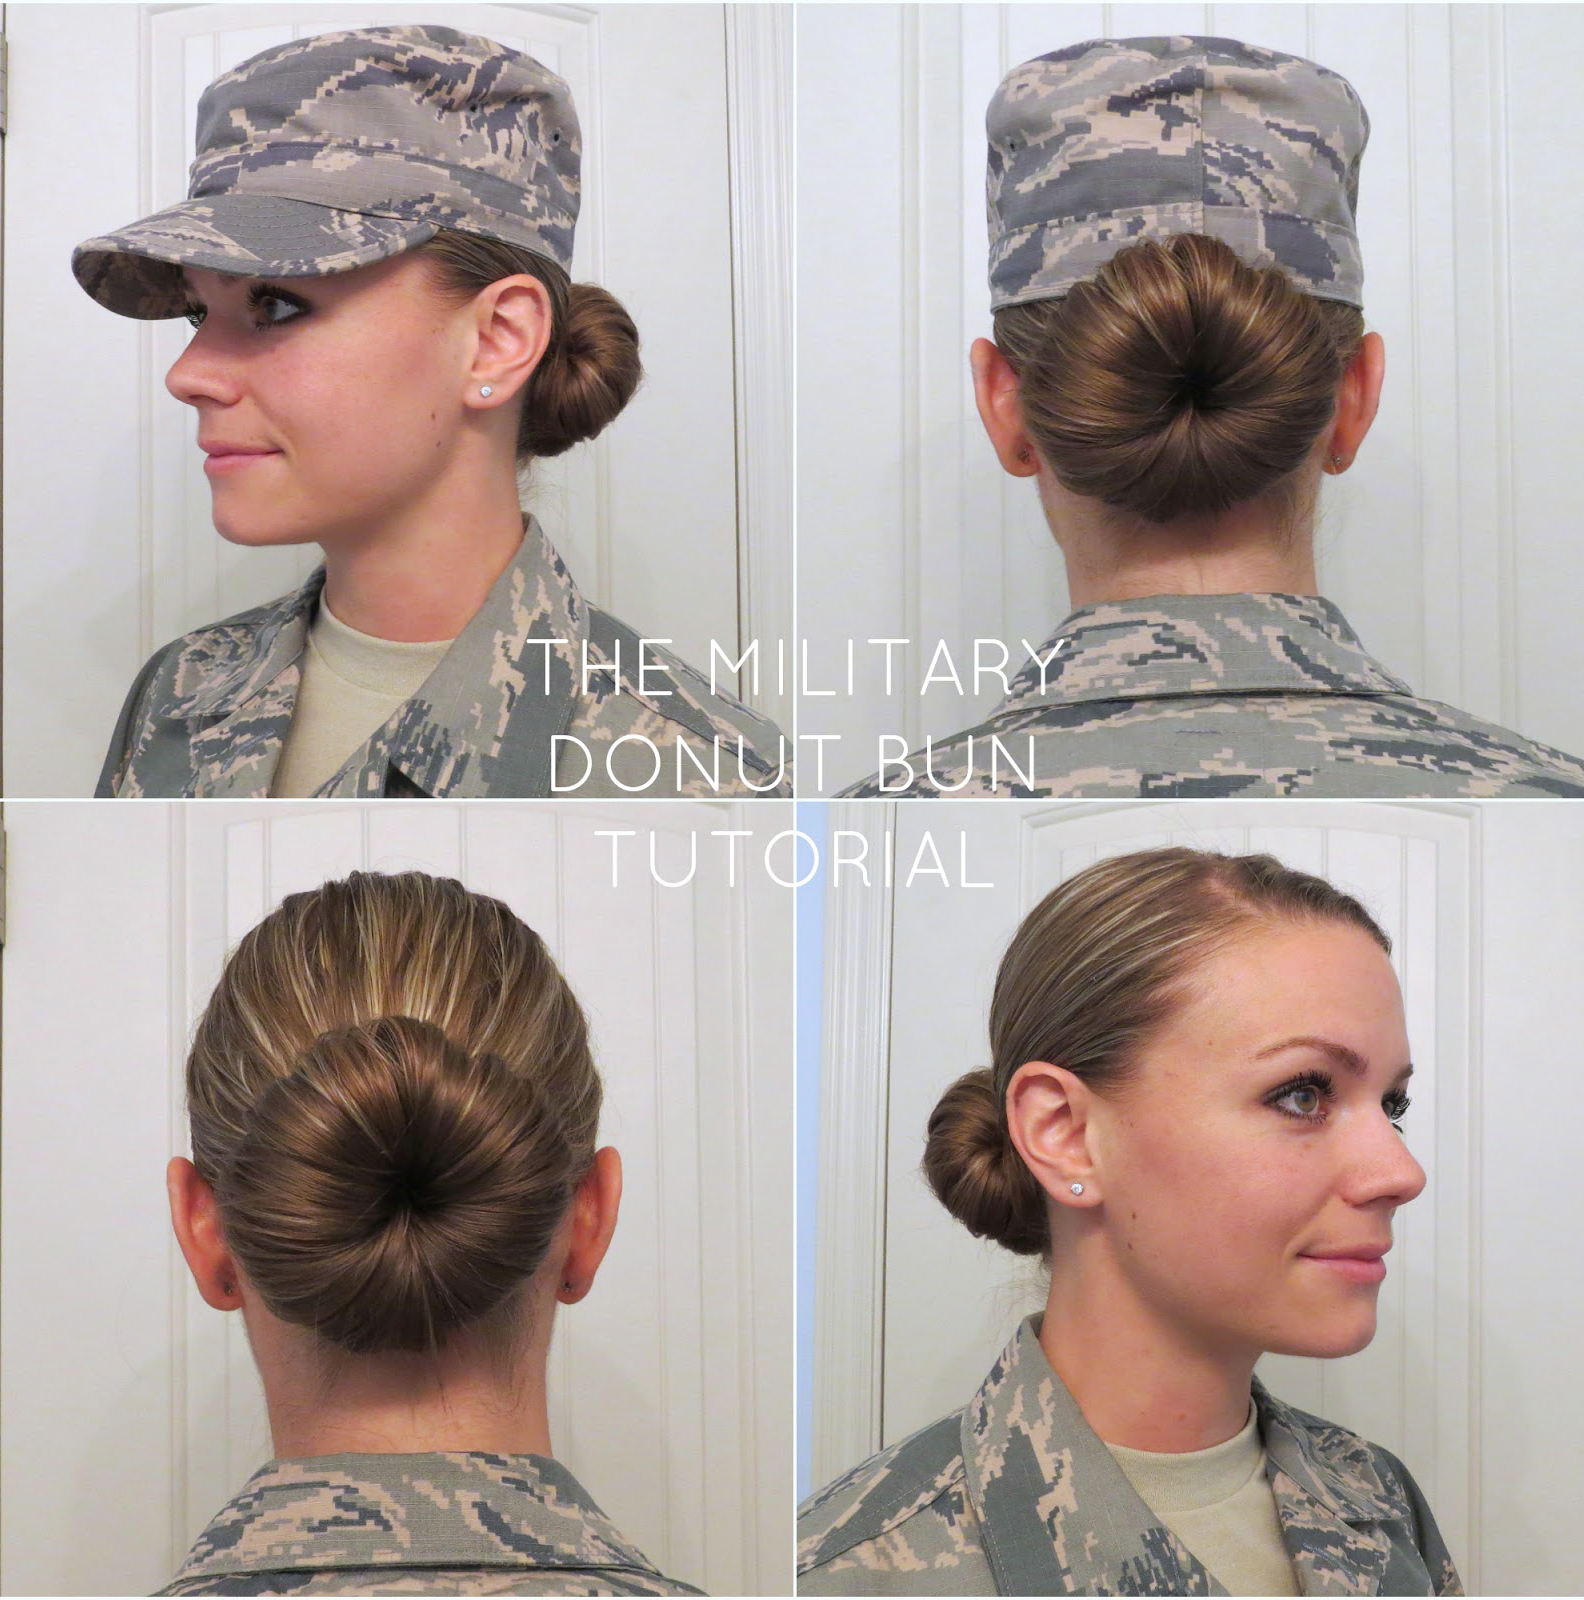 Fabulous Bye Bye Beehive A Hairstyle Blog Military Bun Tutorial Short Hairstyles Gunalazisus